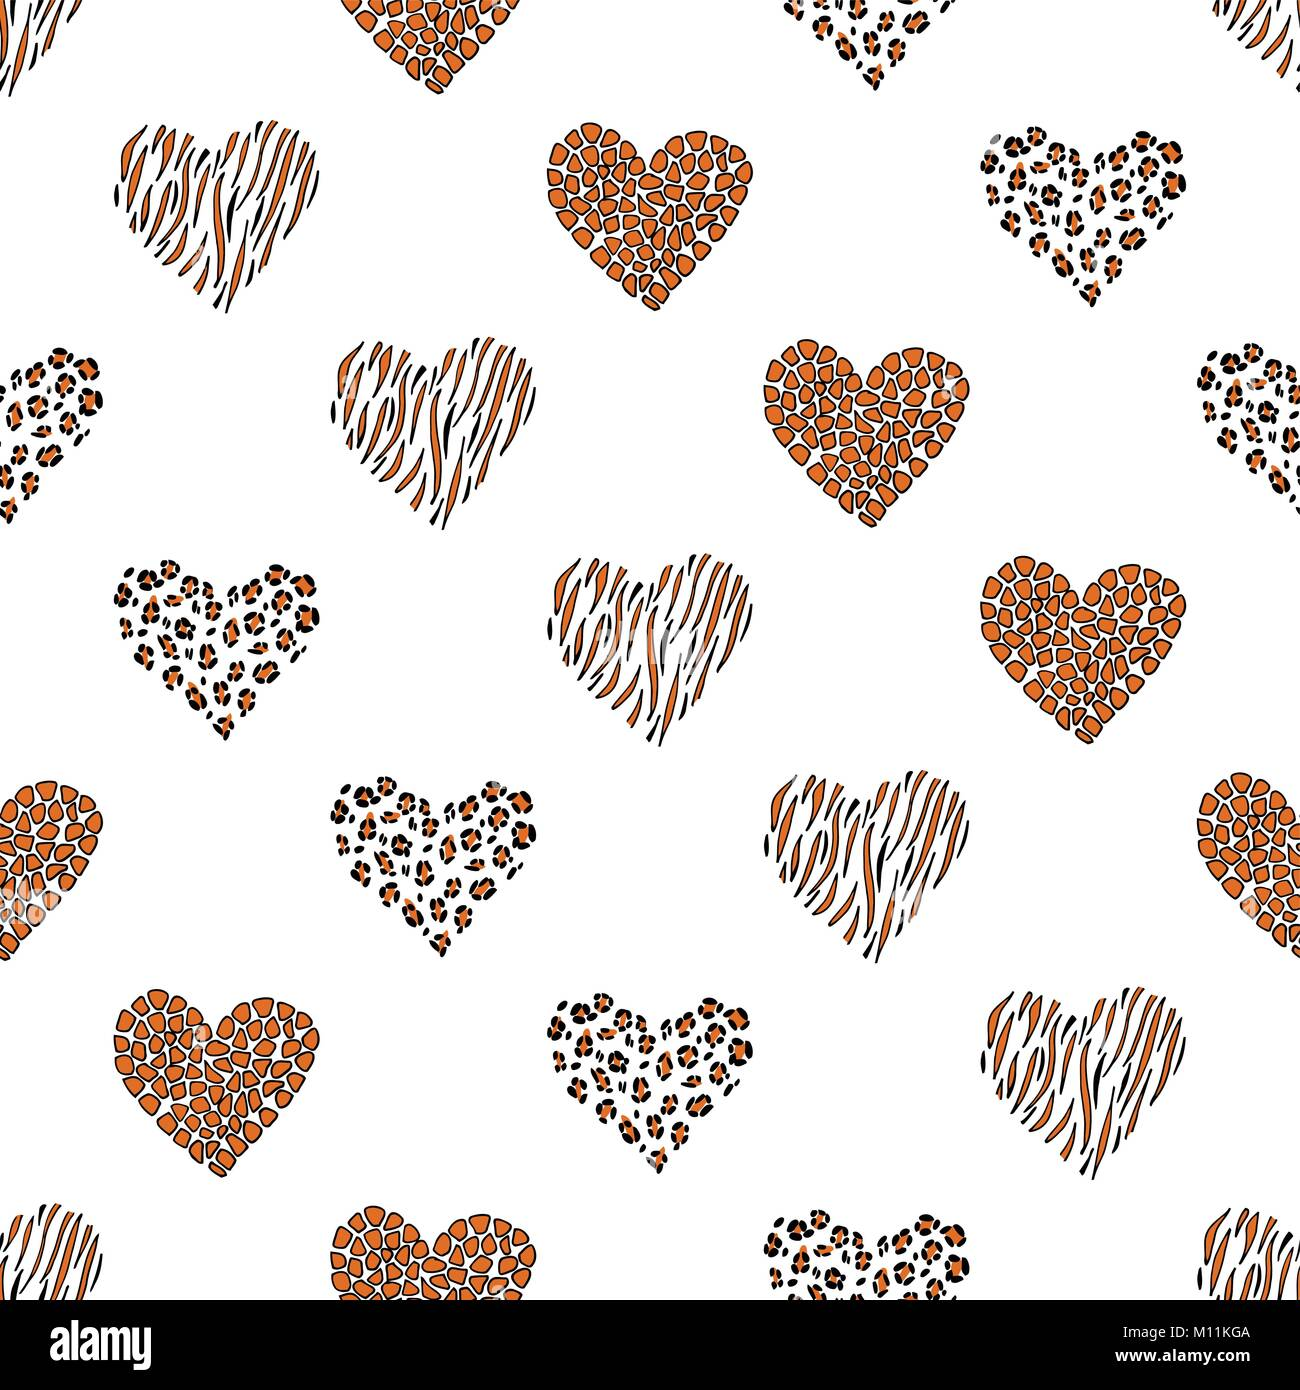 Seamless pattern background with heart - Stock Image